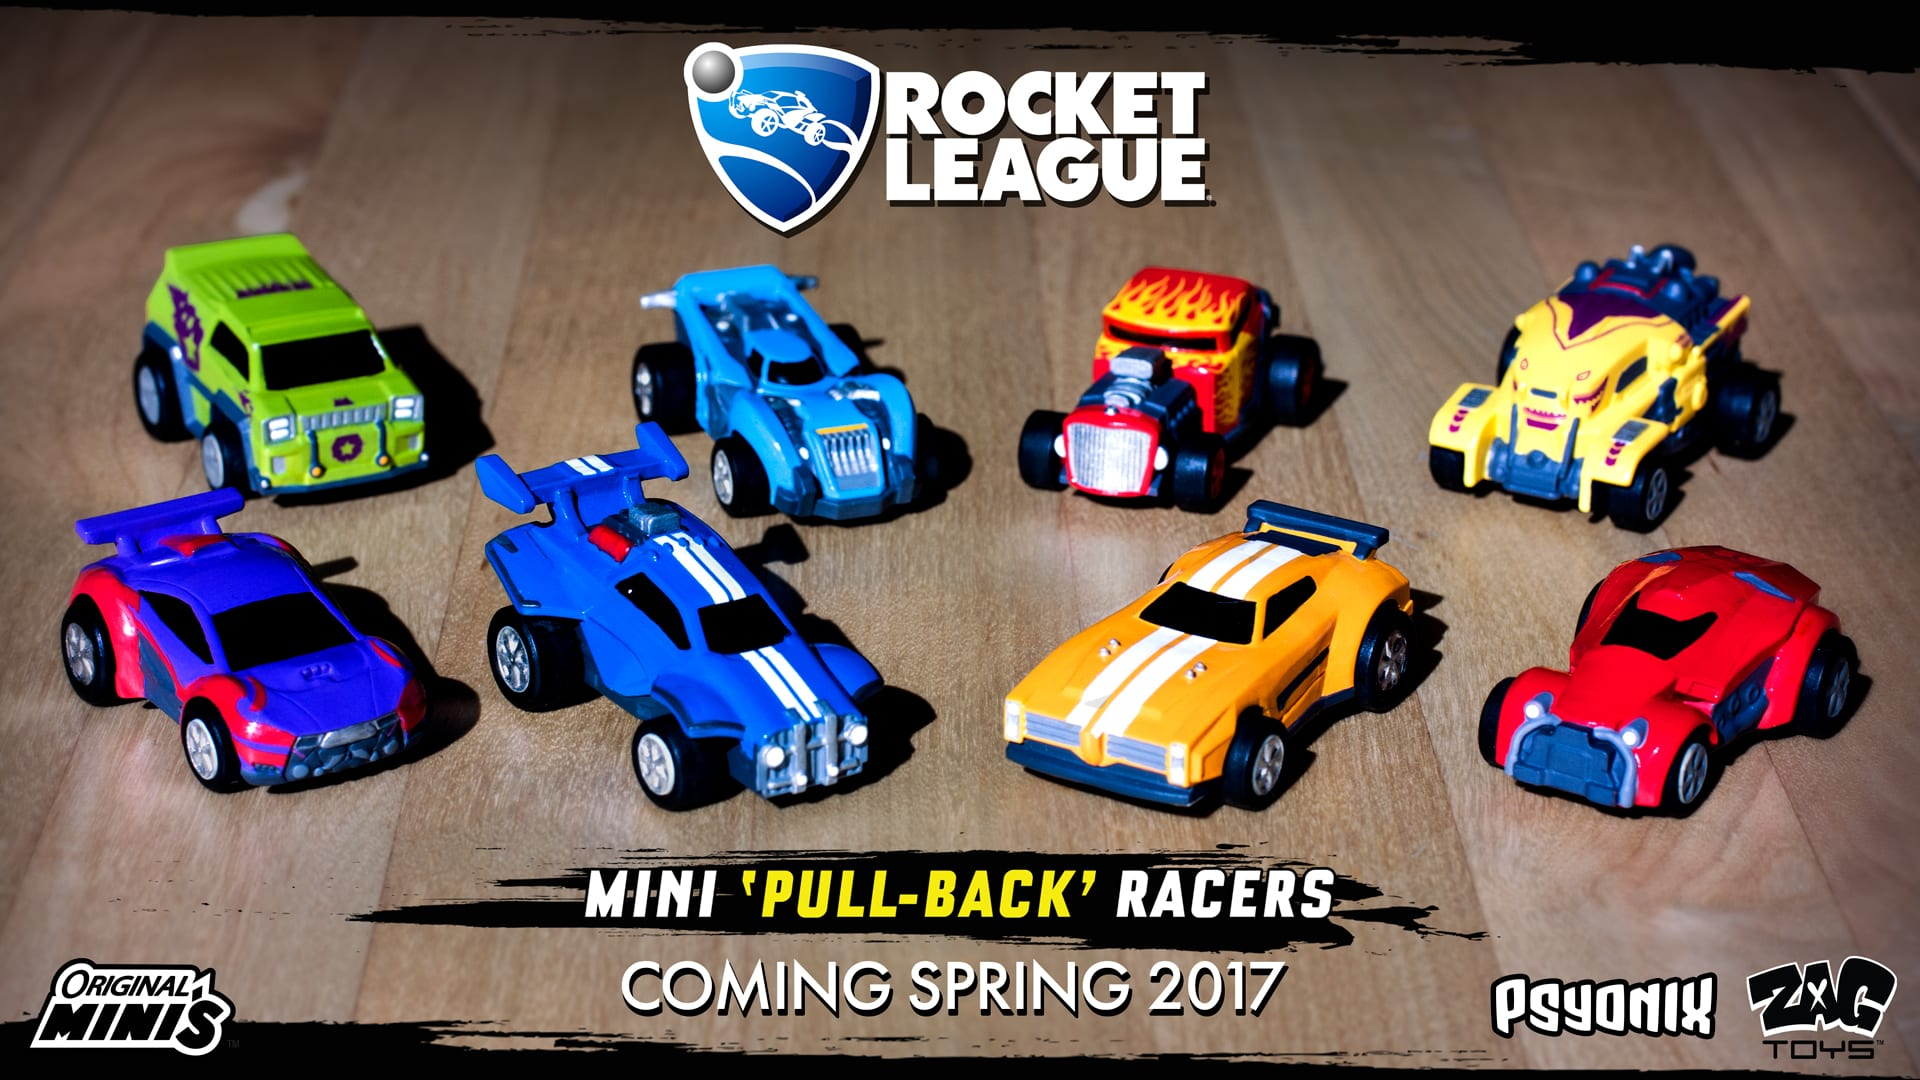 Rocket League Cars Are The New Hot Wheels